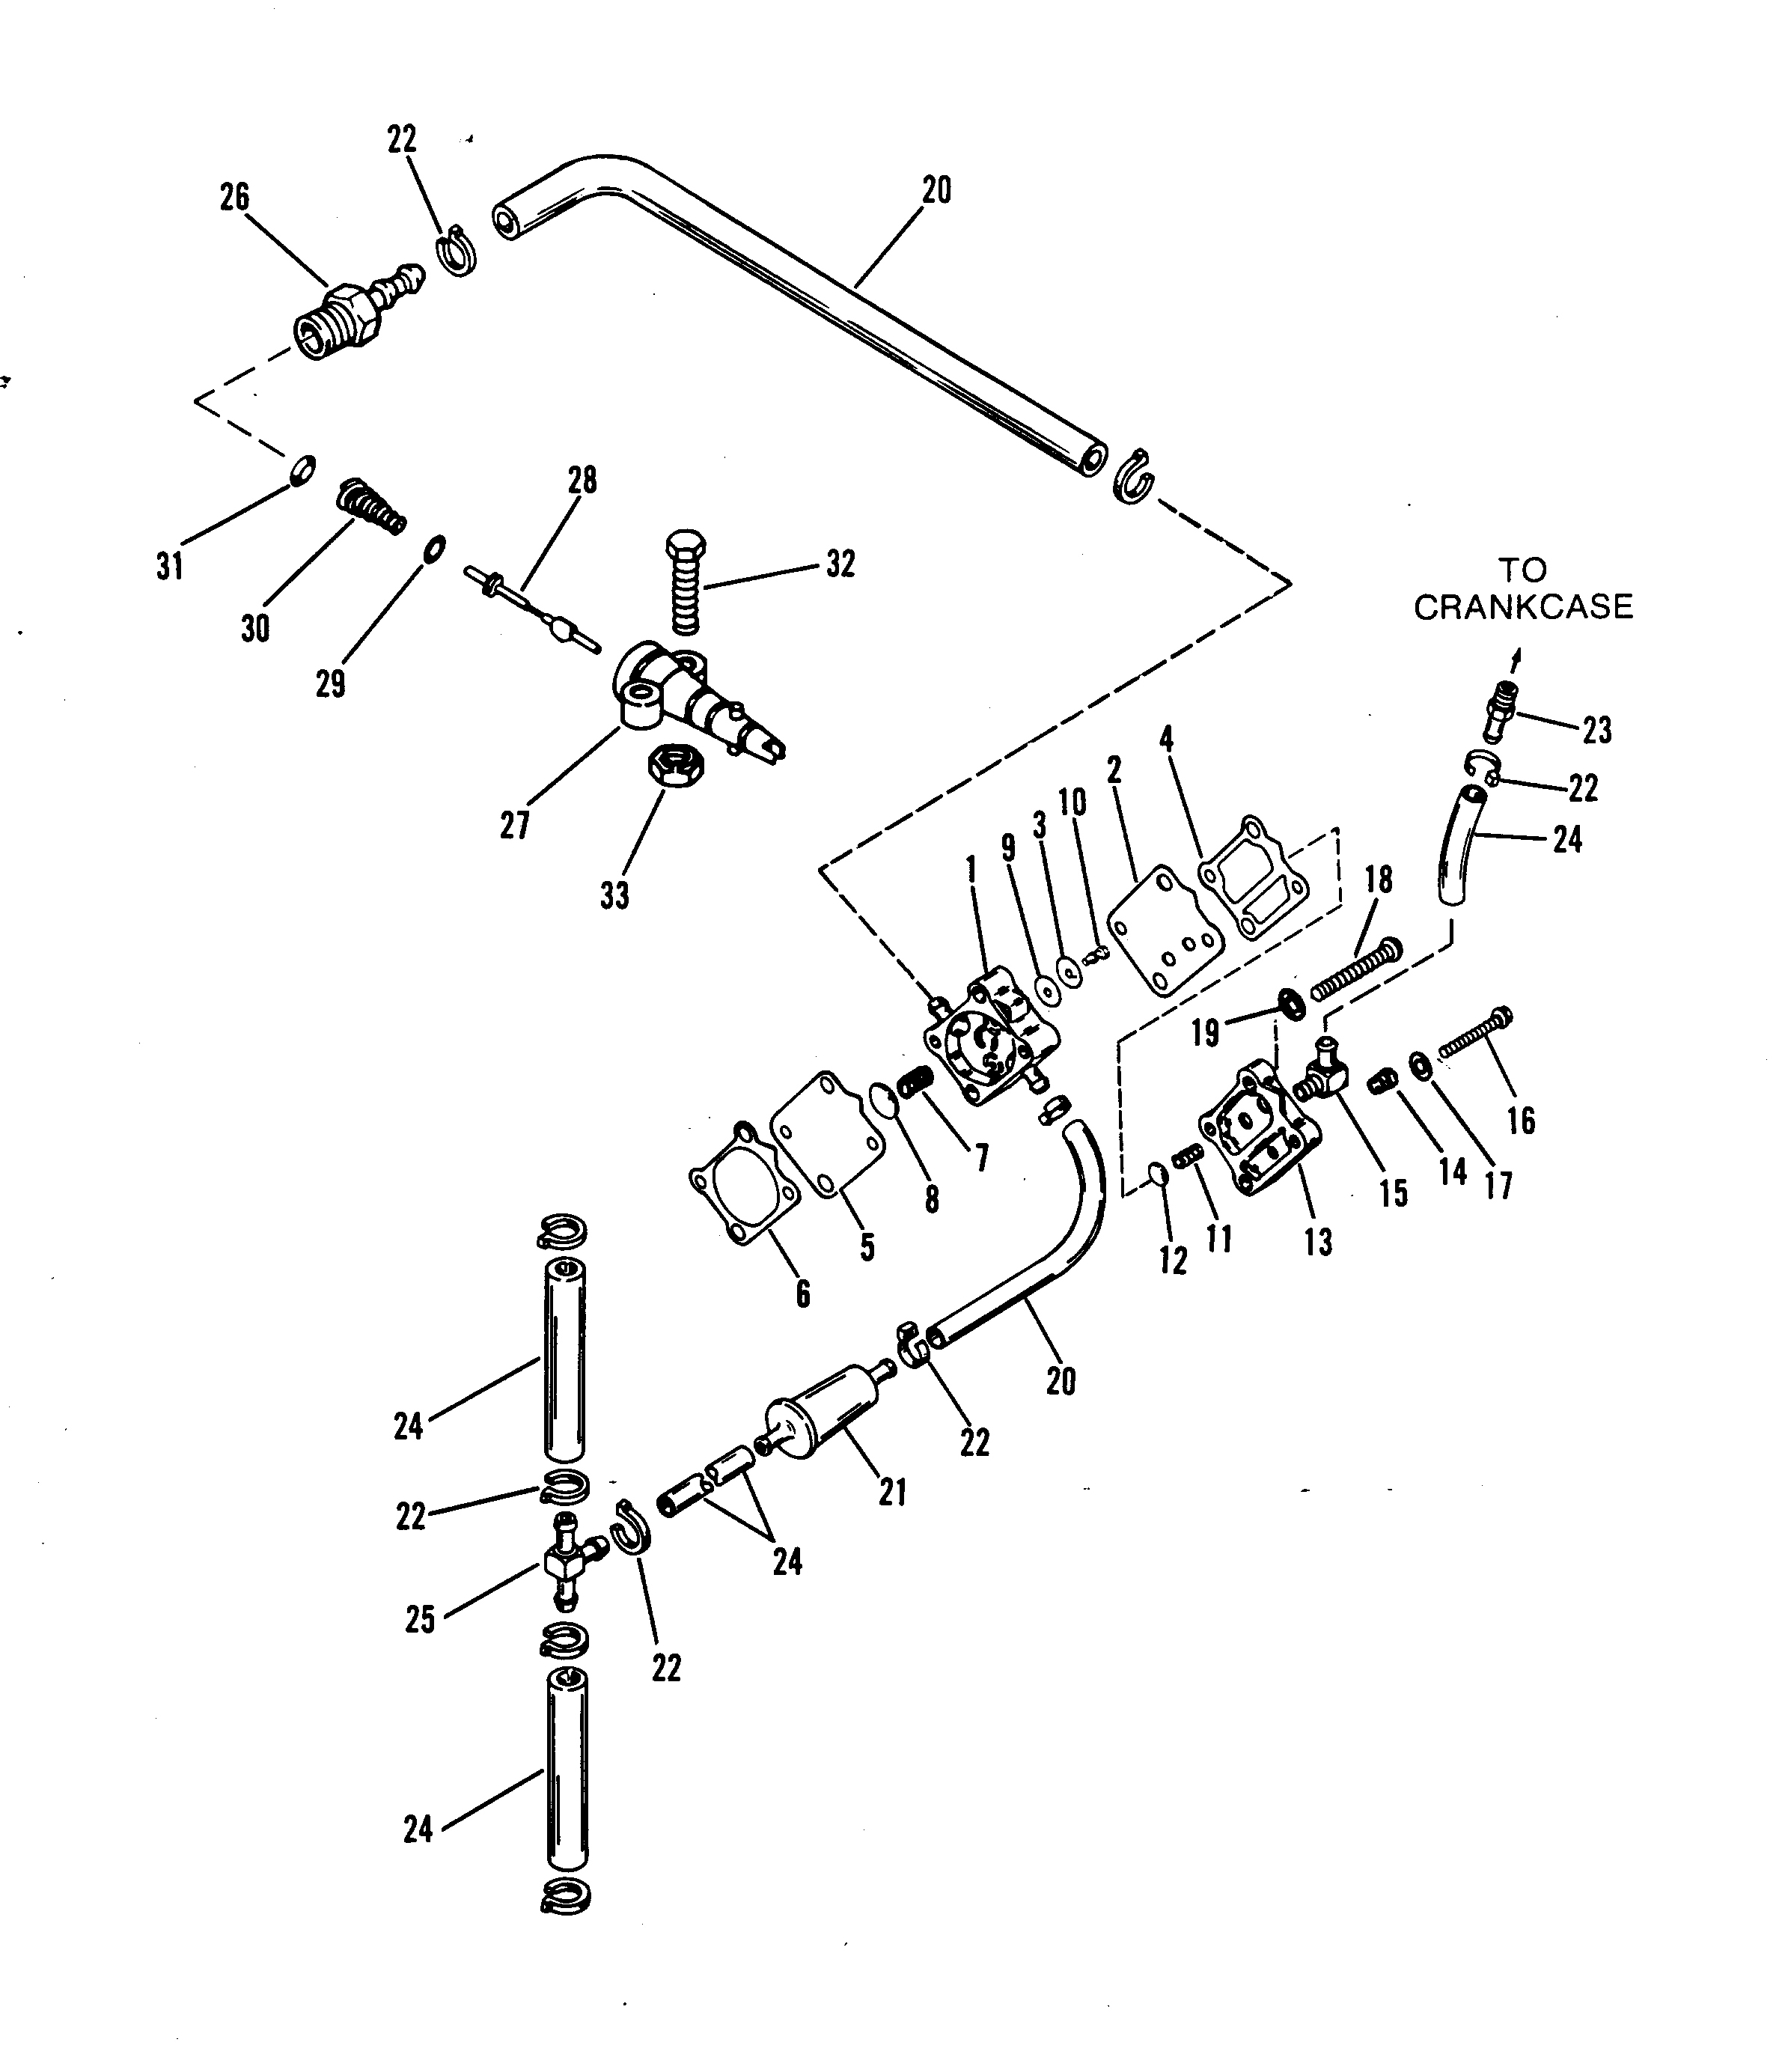 dexter wire diagram blogar co Elevator Controller Wiring Diagram spx stone hydraulic pump wiring diagram v dc snow plough solenoid operated hydraulic power unit power angle and lift gravity down r